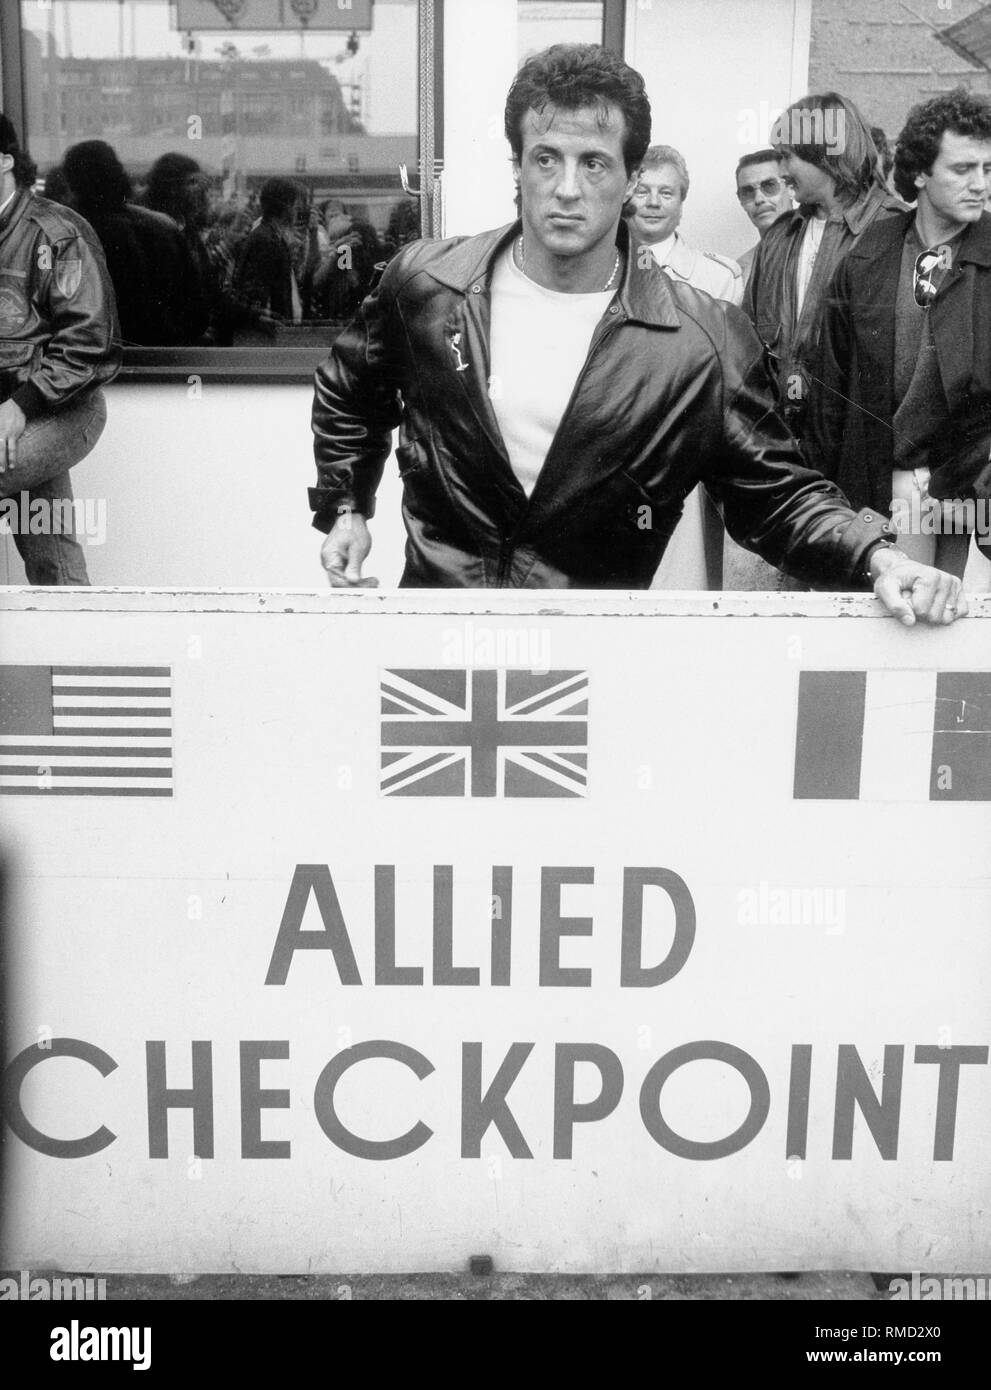 The actor Sylvester Stallone during a visit to Berlin at Checkpoint Charlie. - Stock Image